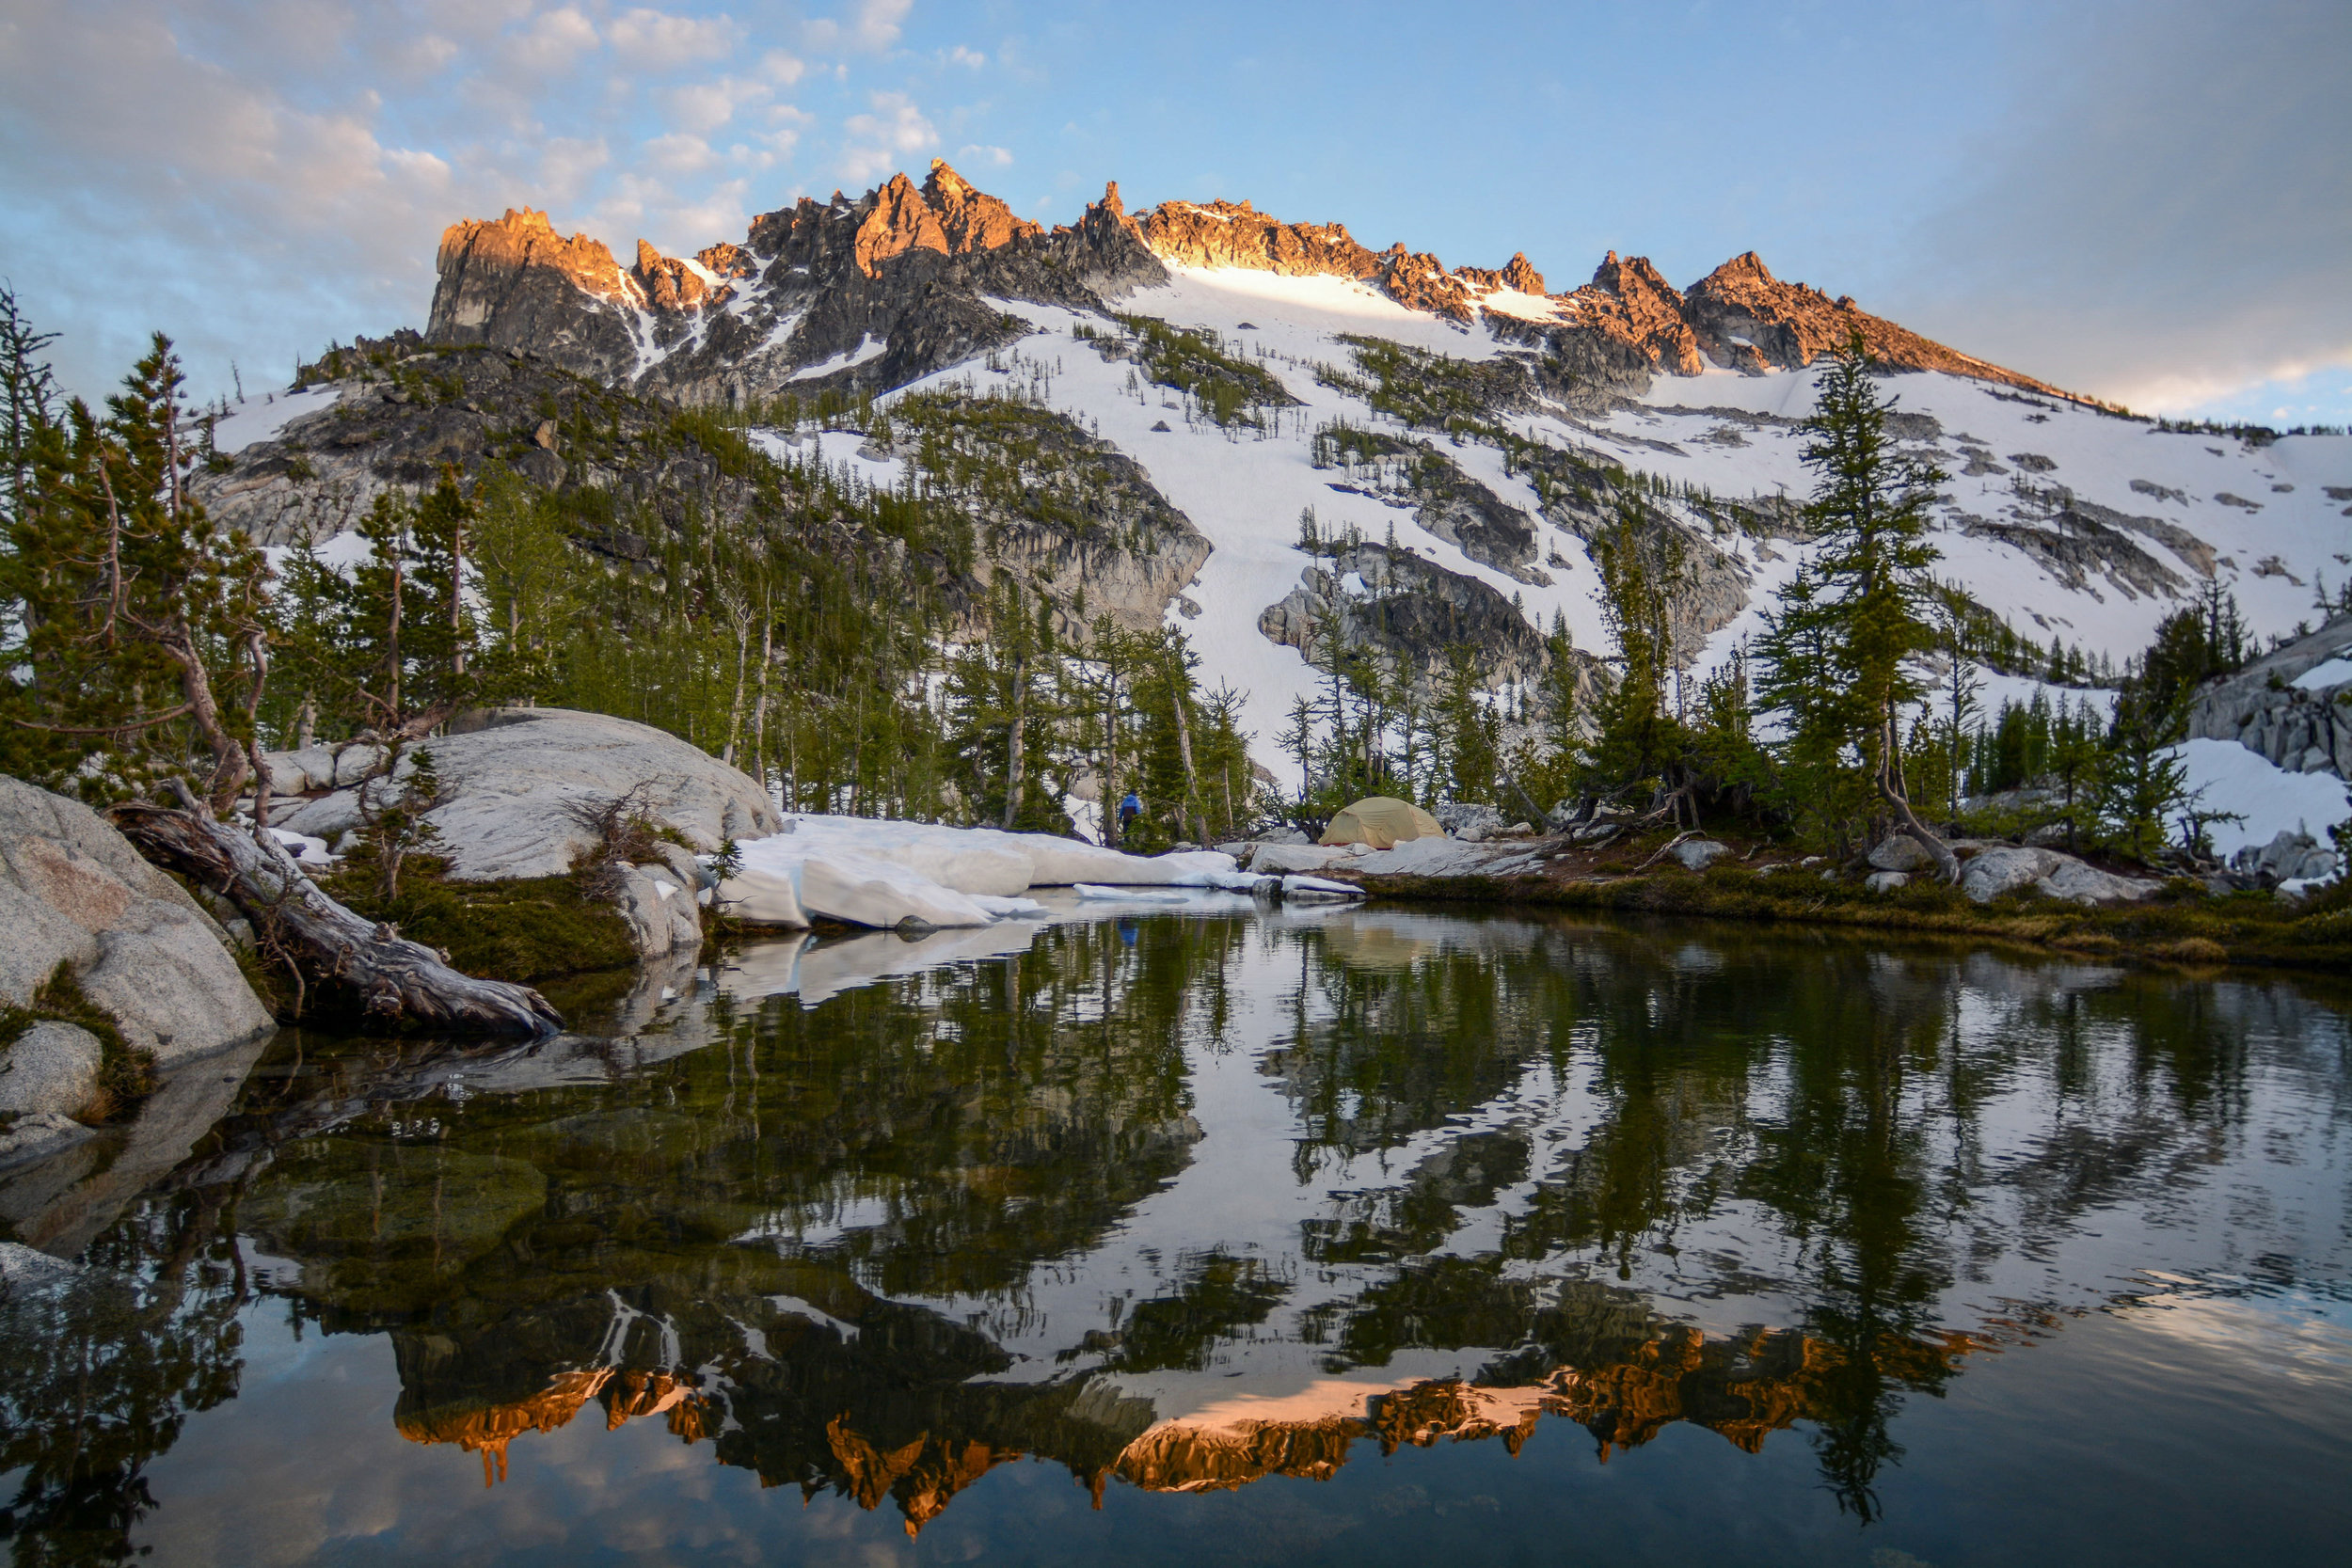 I love this campsite. I have spent many nights there, watching alpenglow set these peaks on fire. In recognition of that, I won't be applying for permits to visit it for several years so that others can go in my stead. I hope they enjoy it just as much as I have.